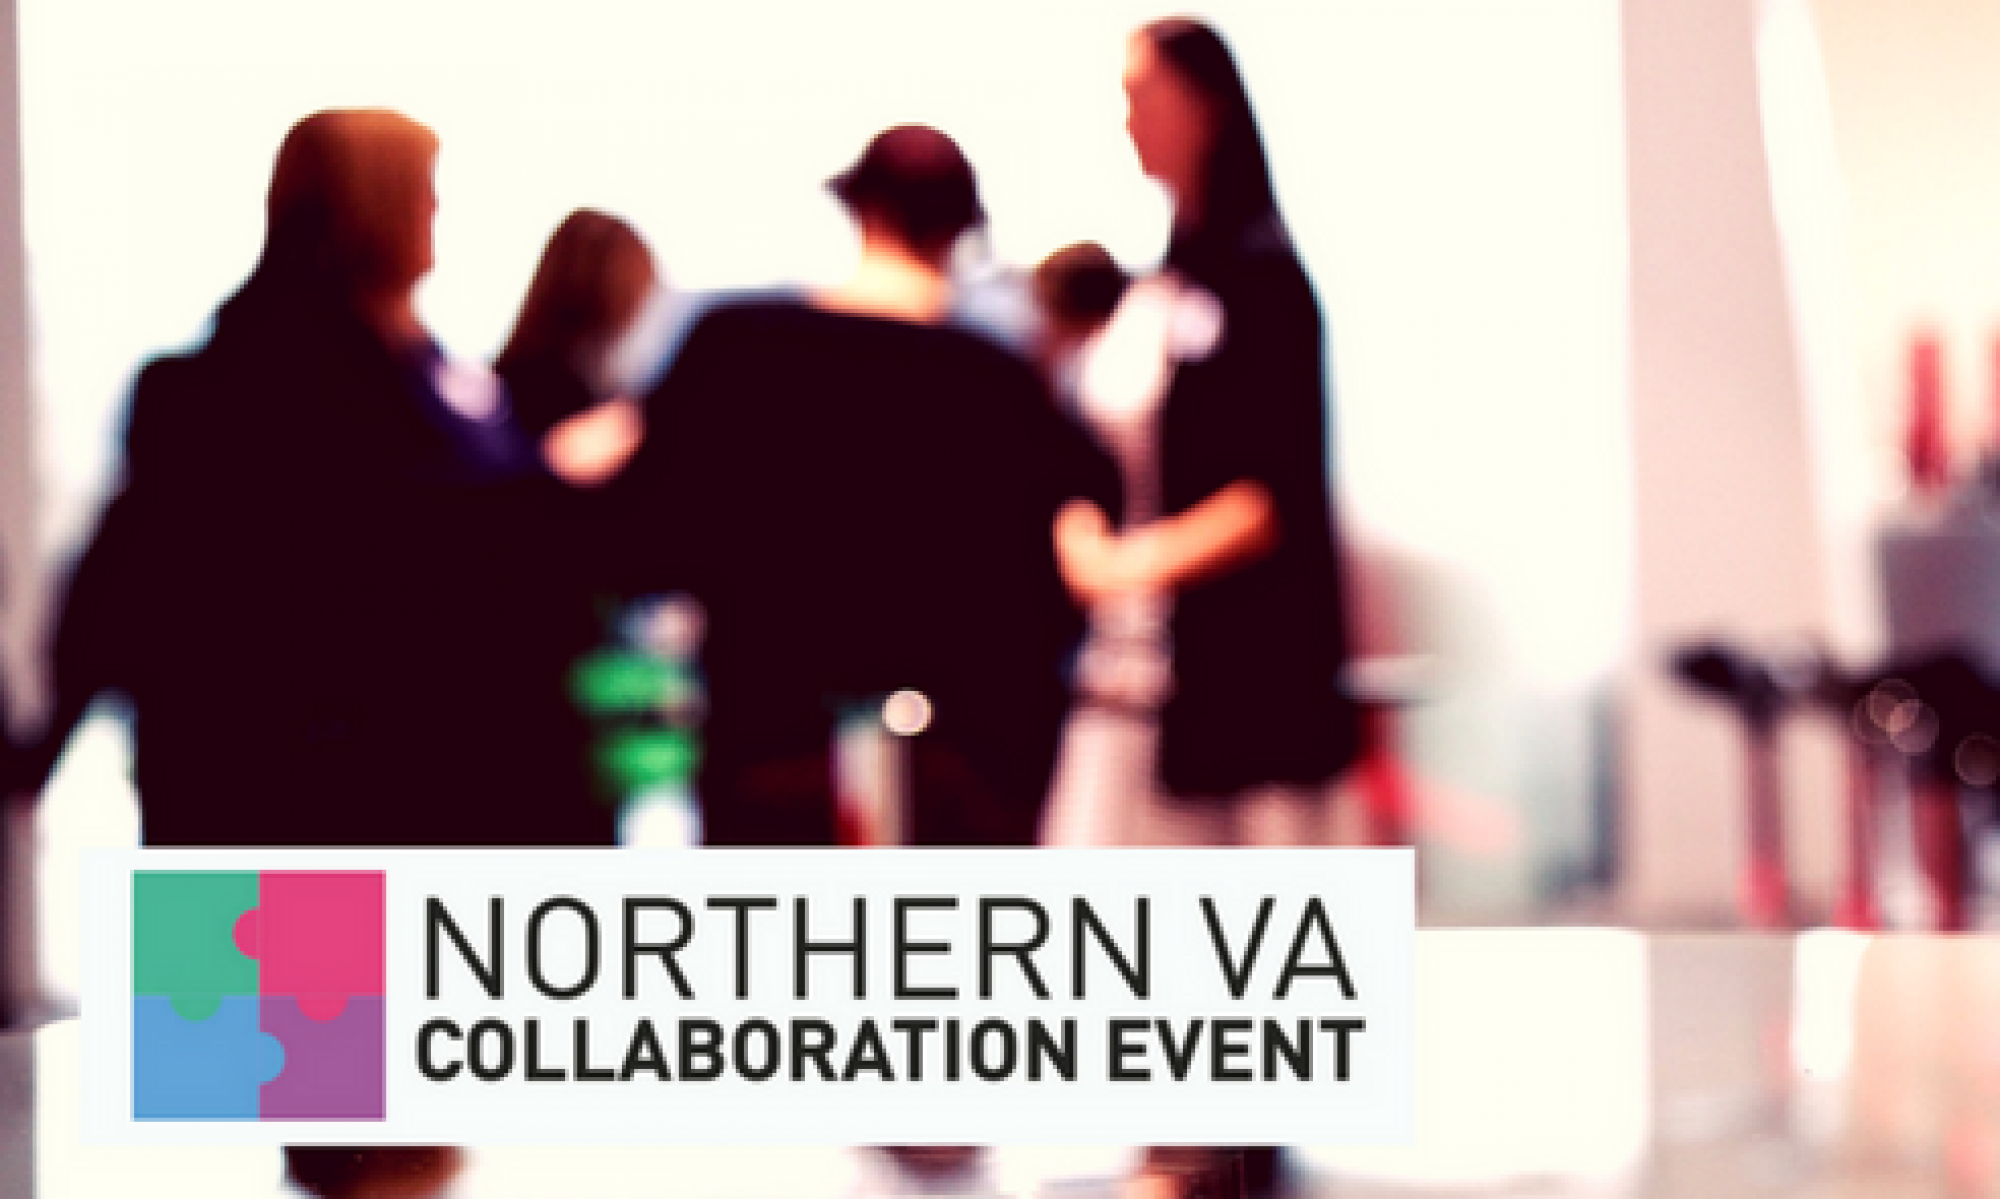 Is Northern VA Collaboration Event Worth Attending?